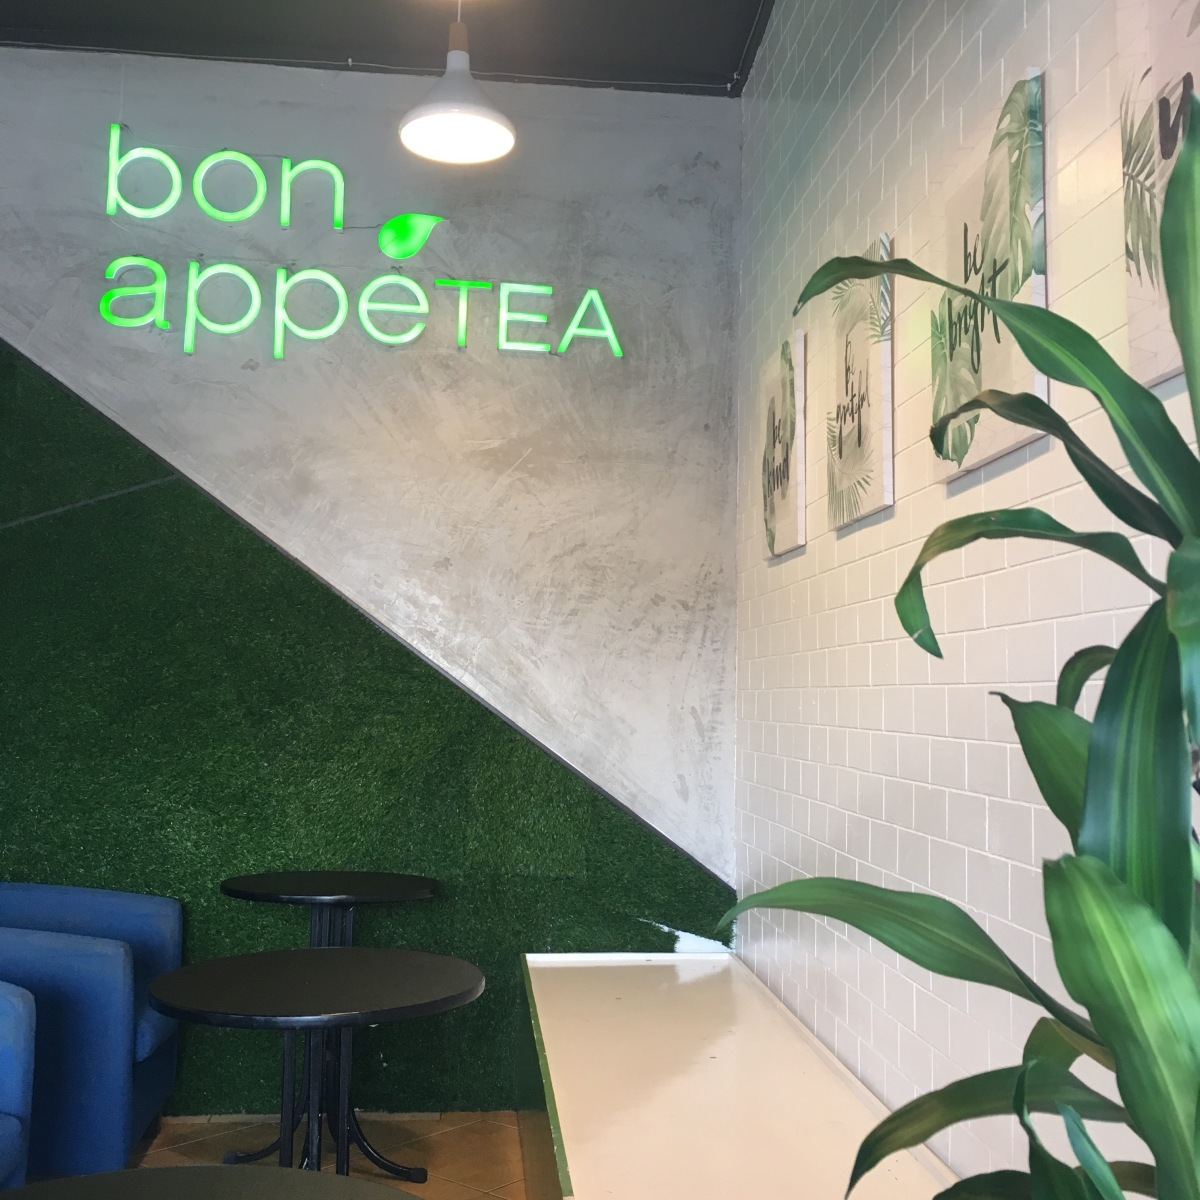 Cozy hangout at Bon Appetea